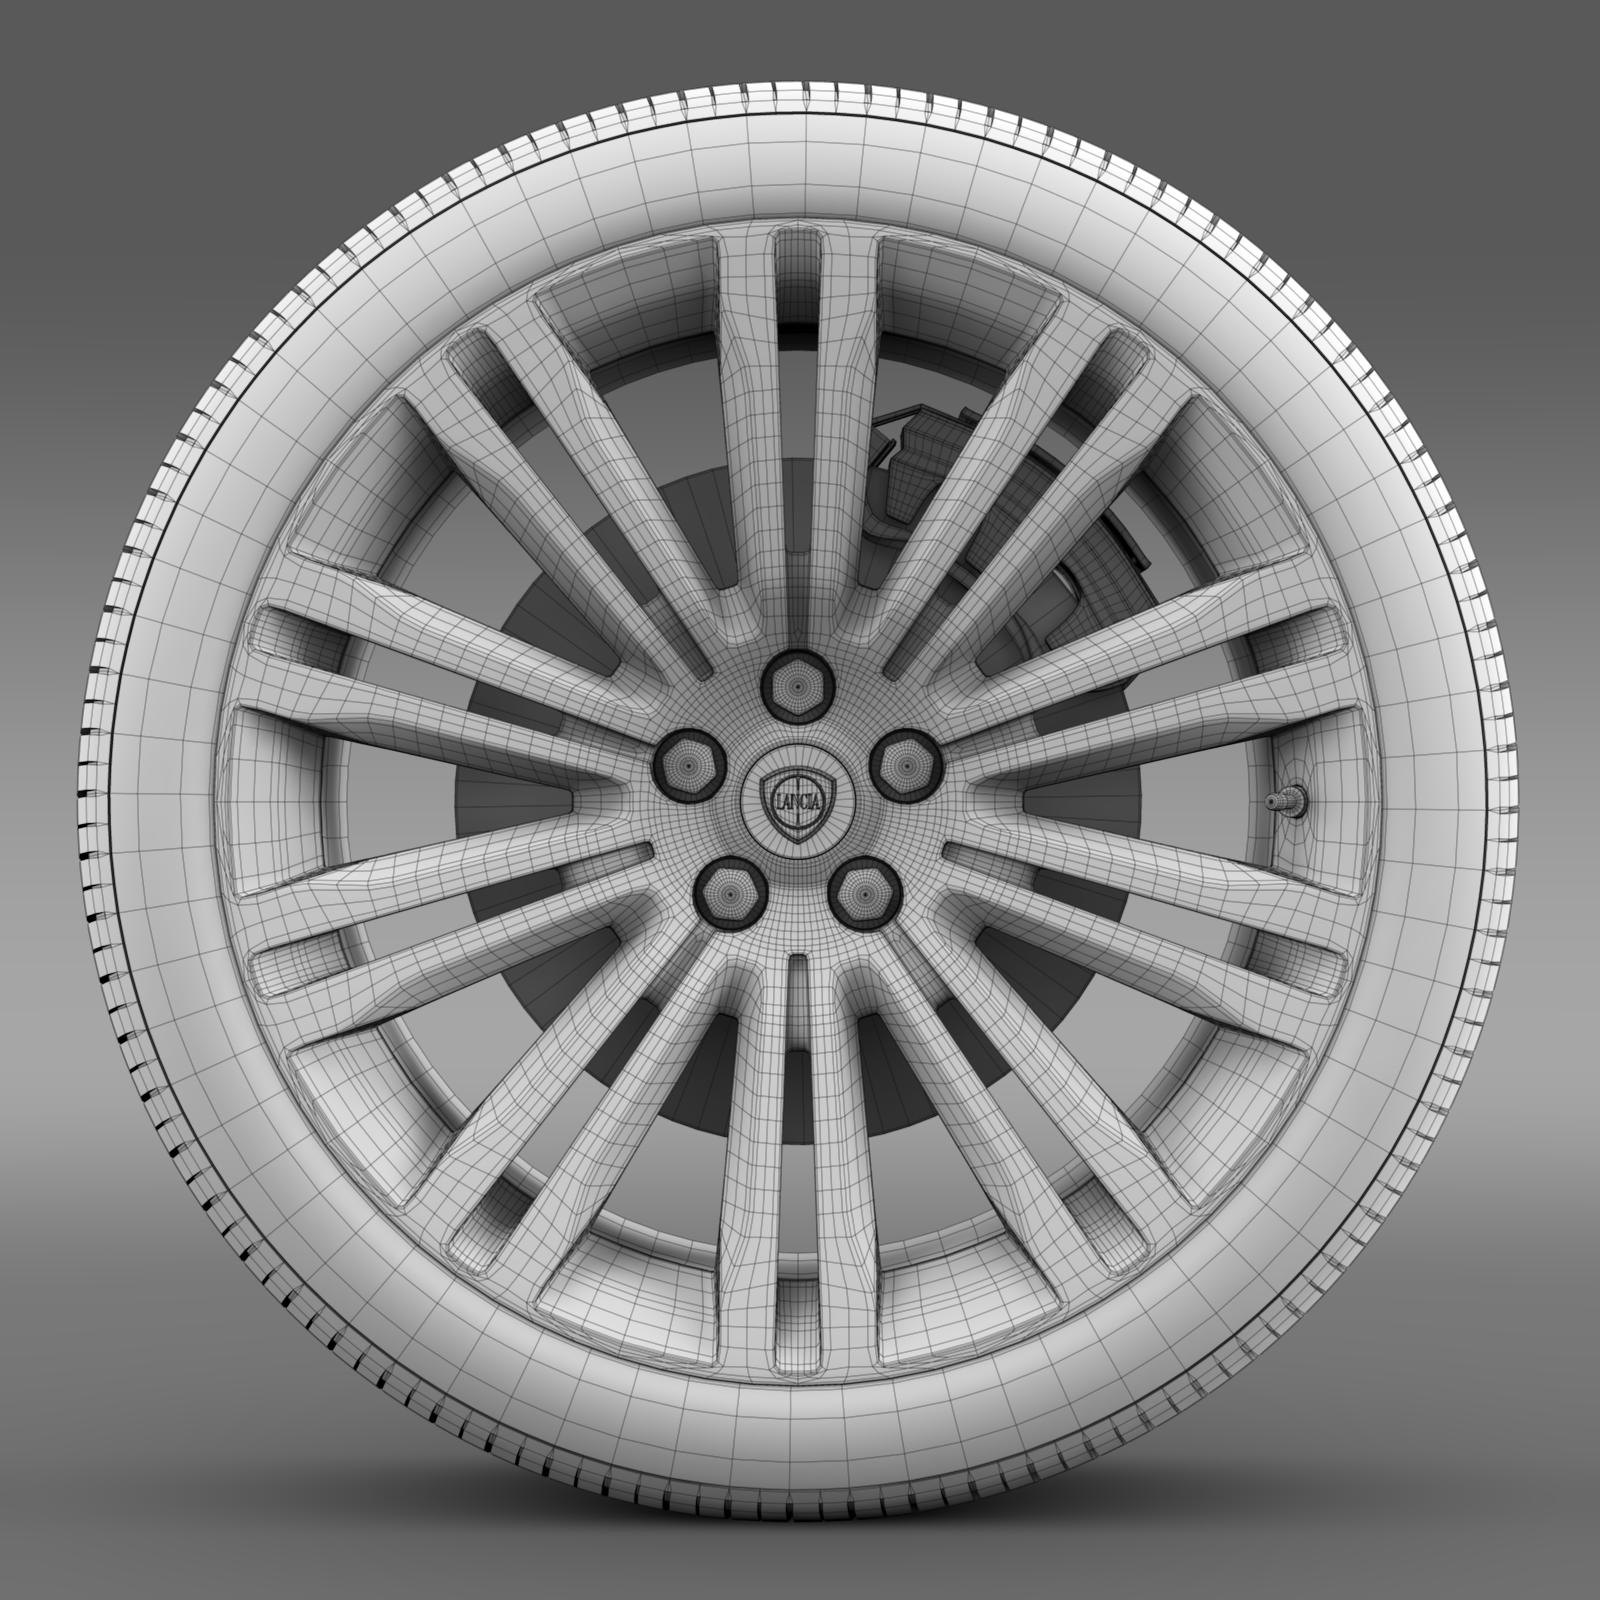 lancia thema 2014 wheel 3d model 3ds max fbx c4d lwo ma mb hrc xsi obj 210737